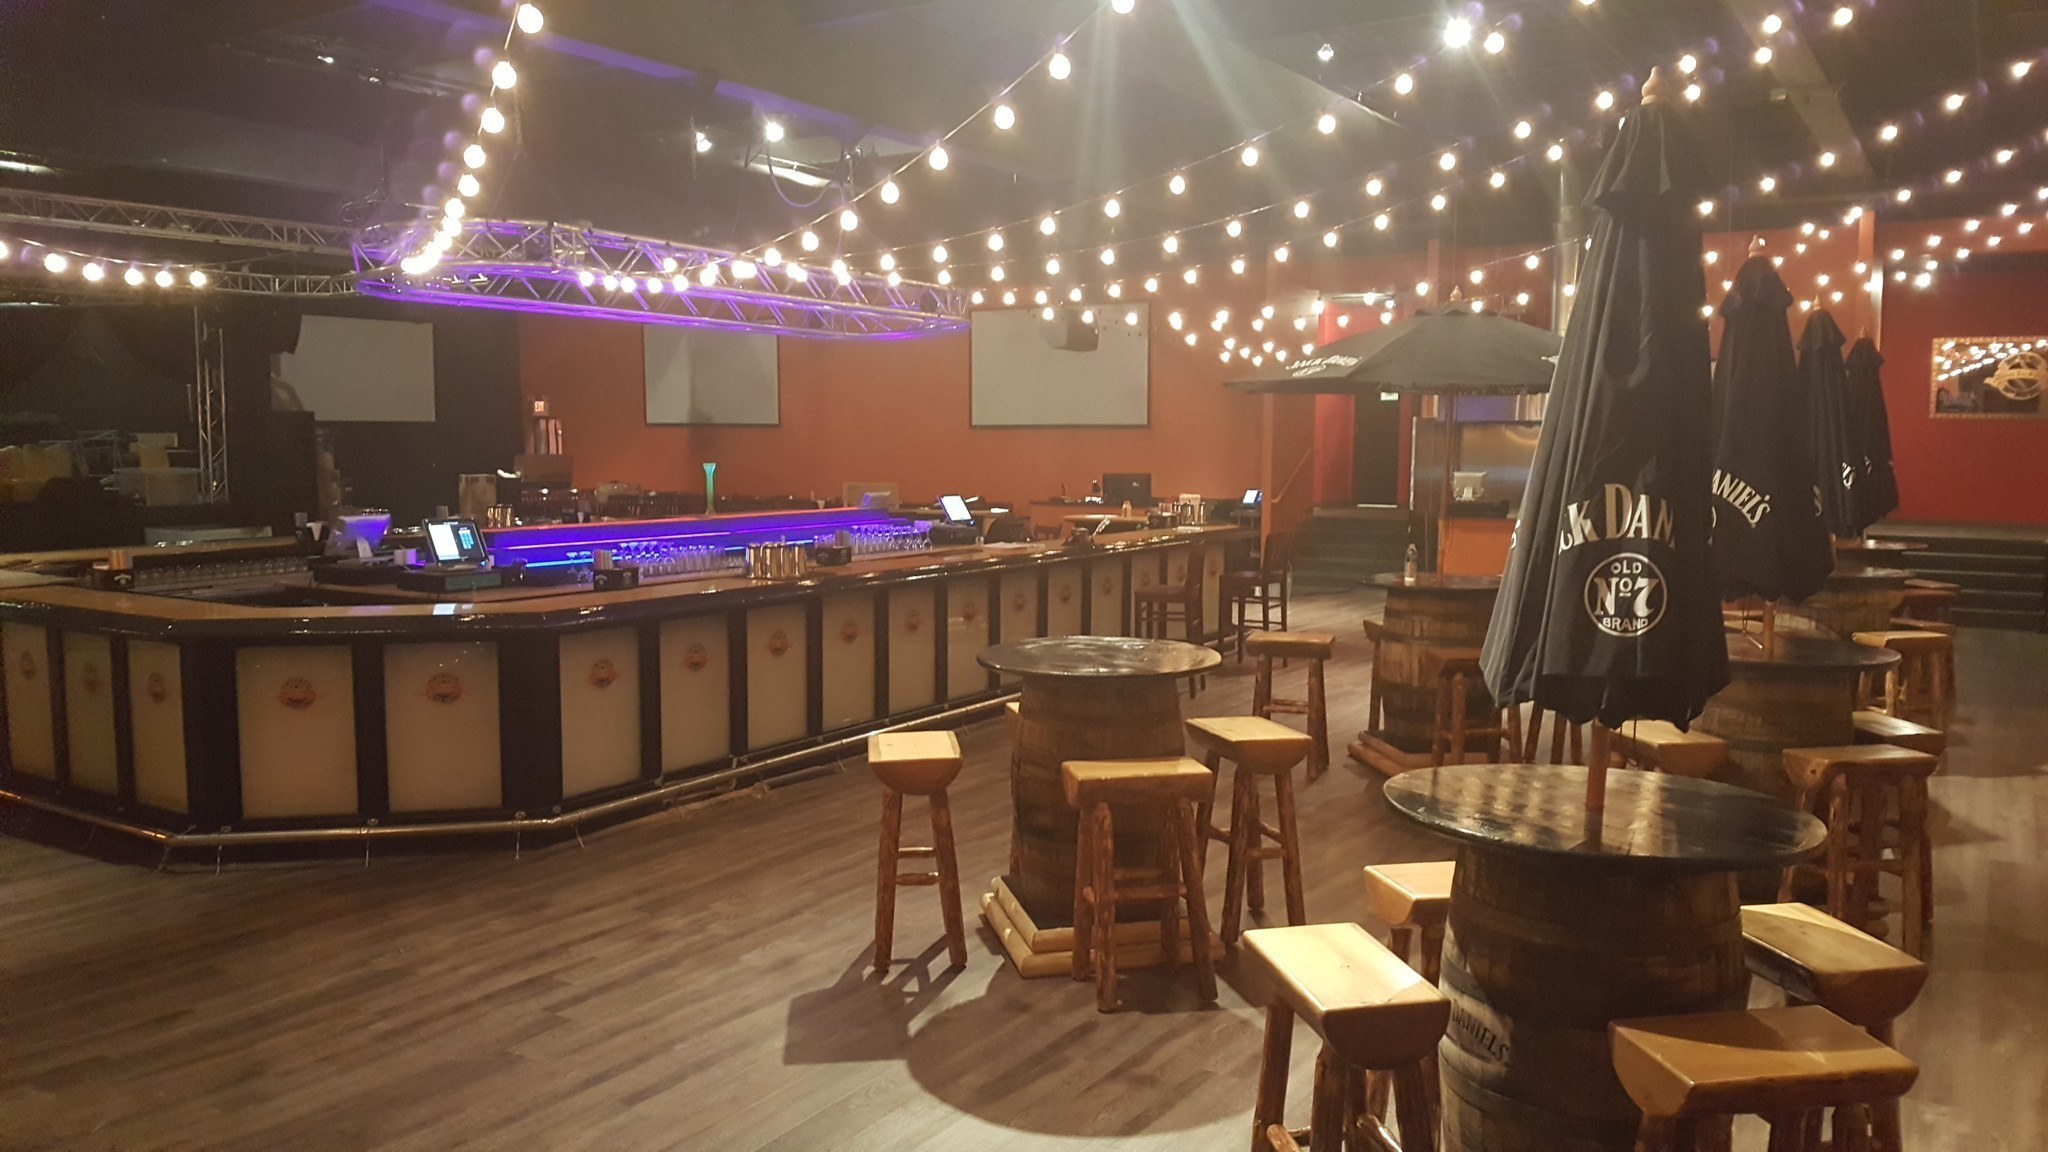 Allentown S Pig Pen Fun Bar Opening This Weekend The